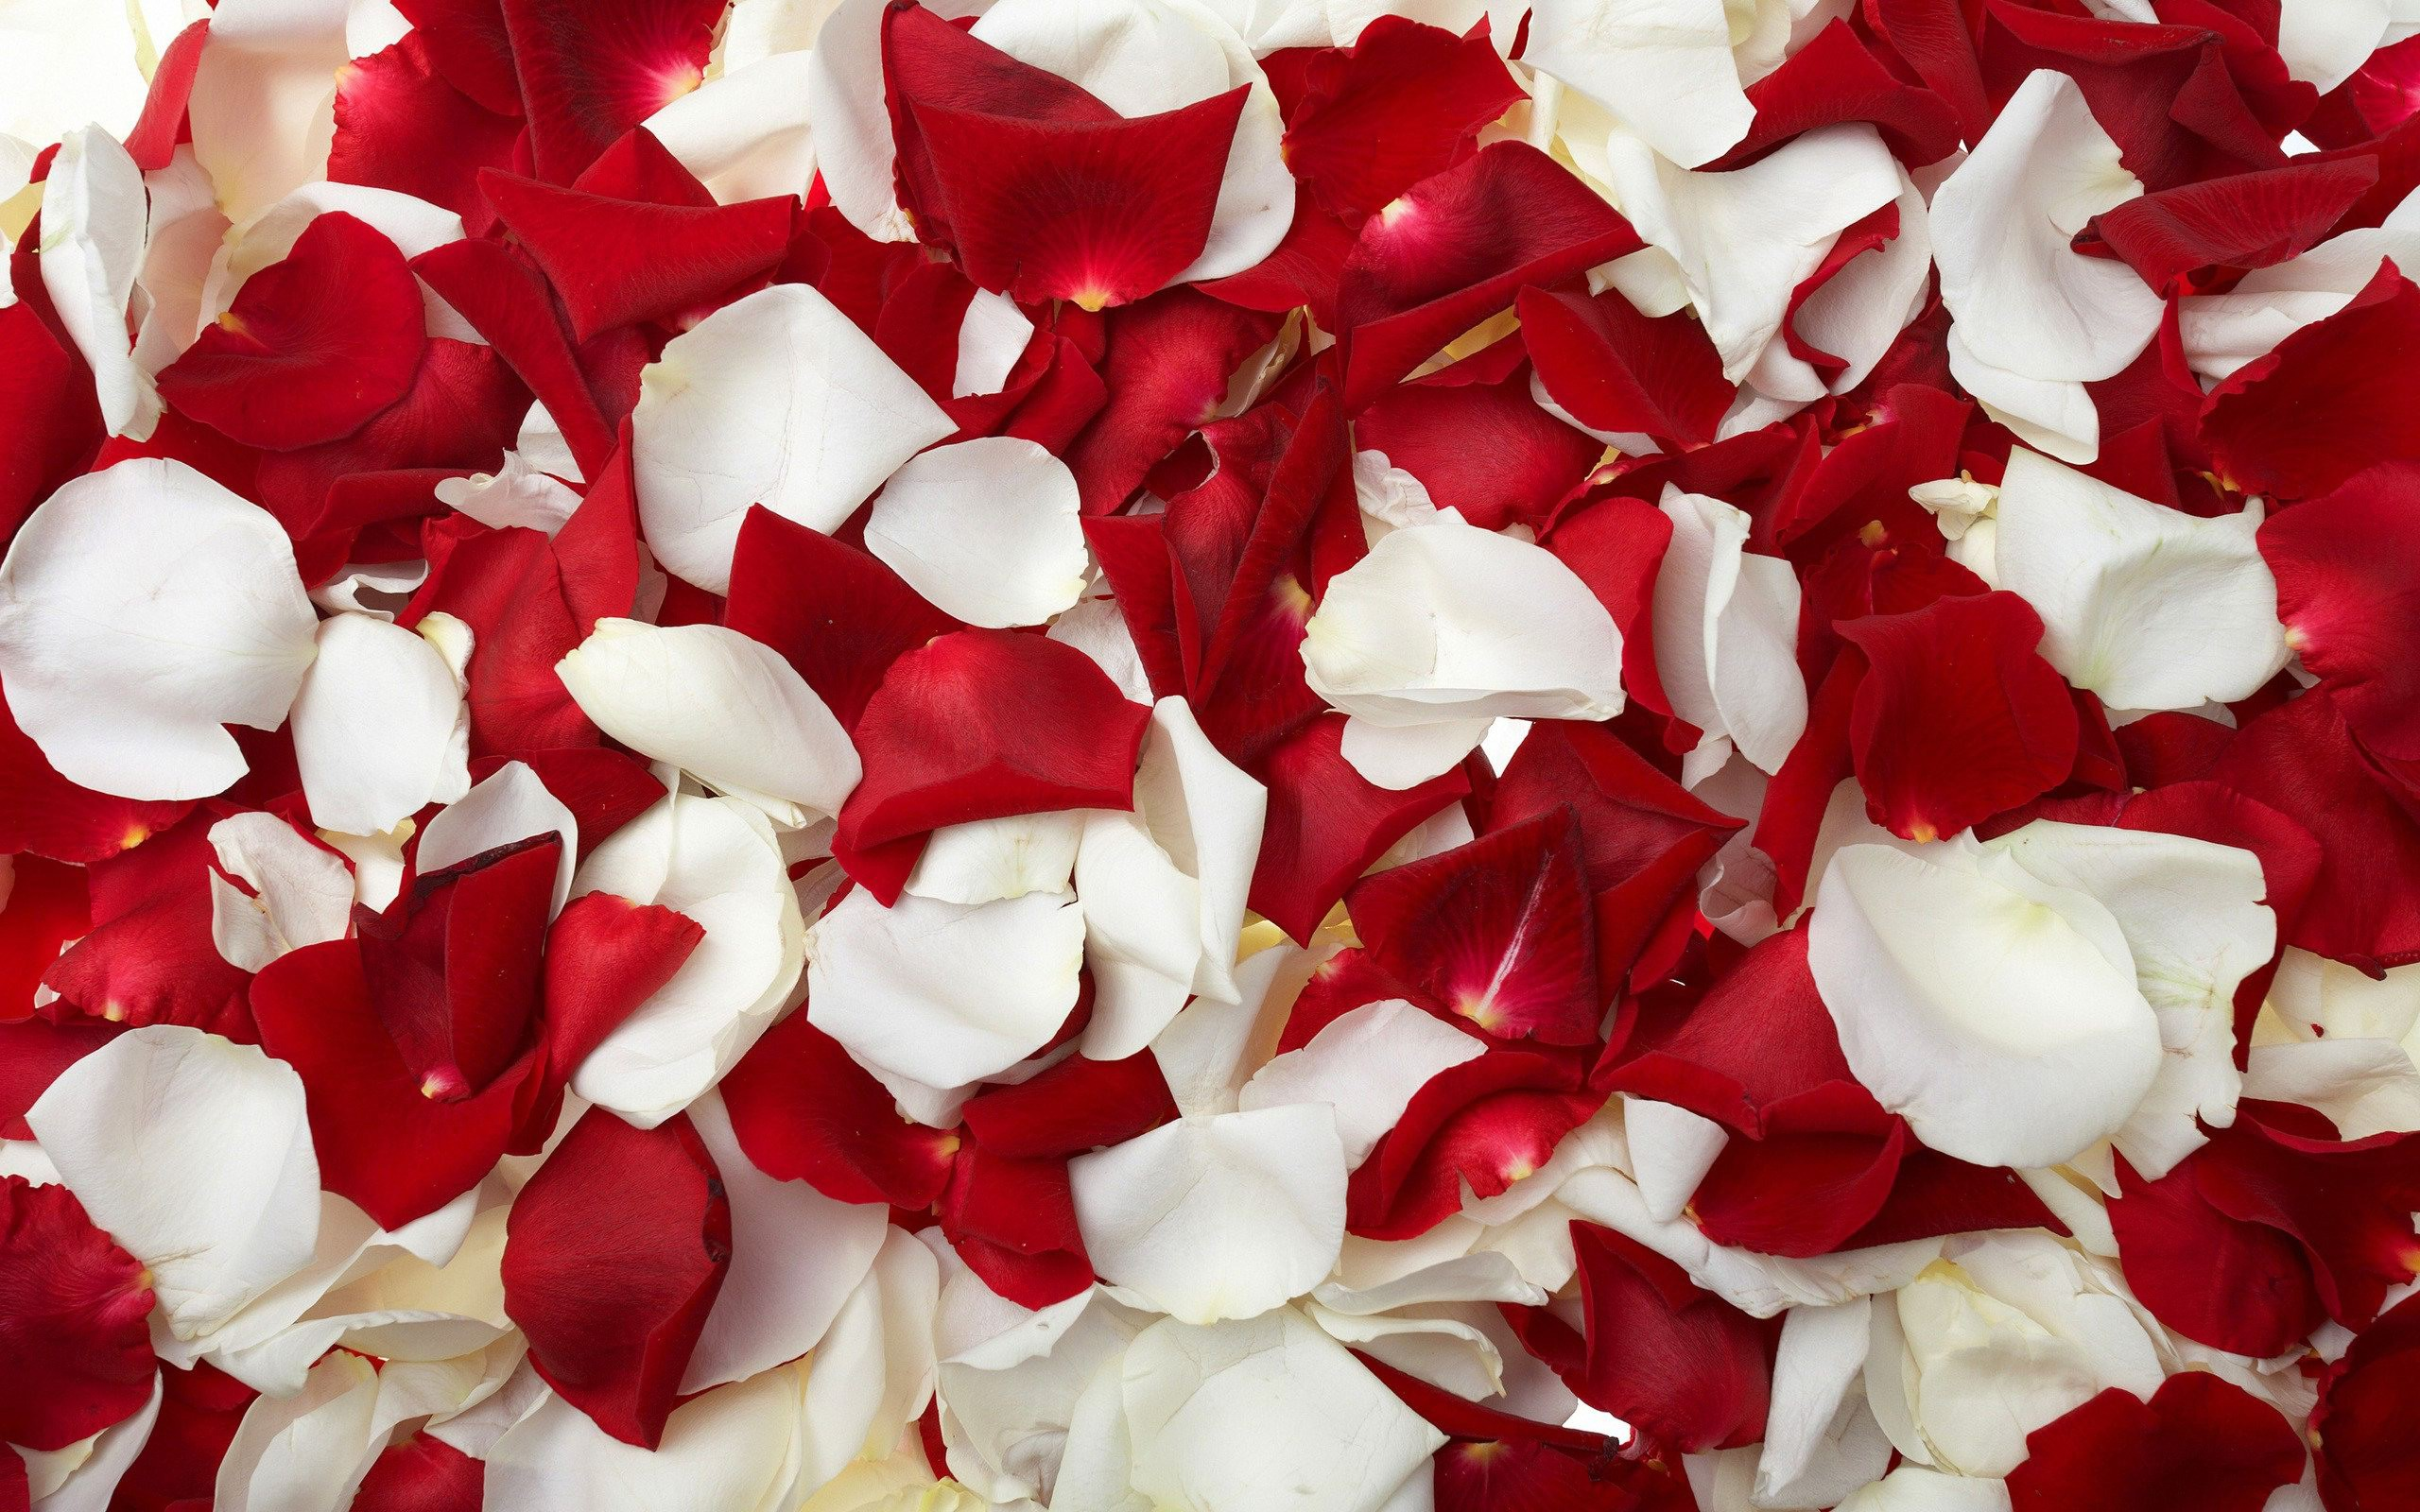 White Rose Petals Wallpaper Red And White Roses Petals